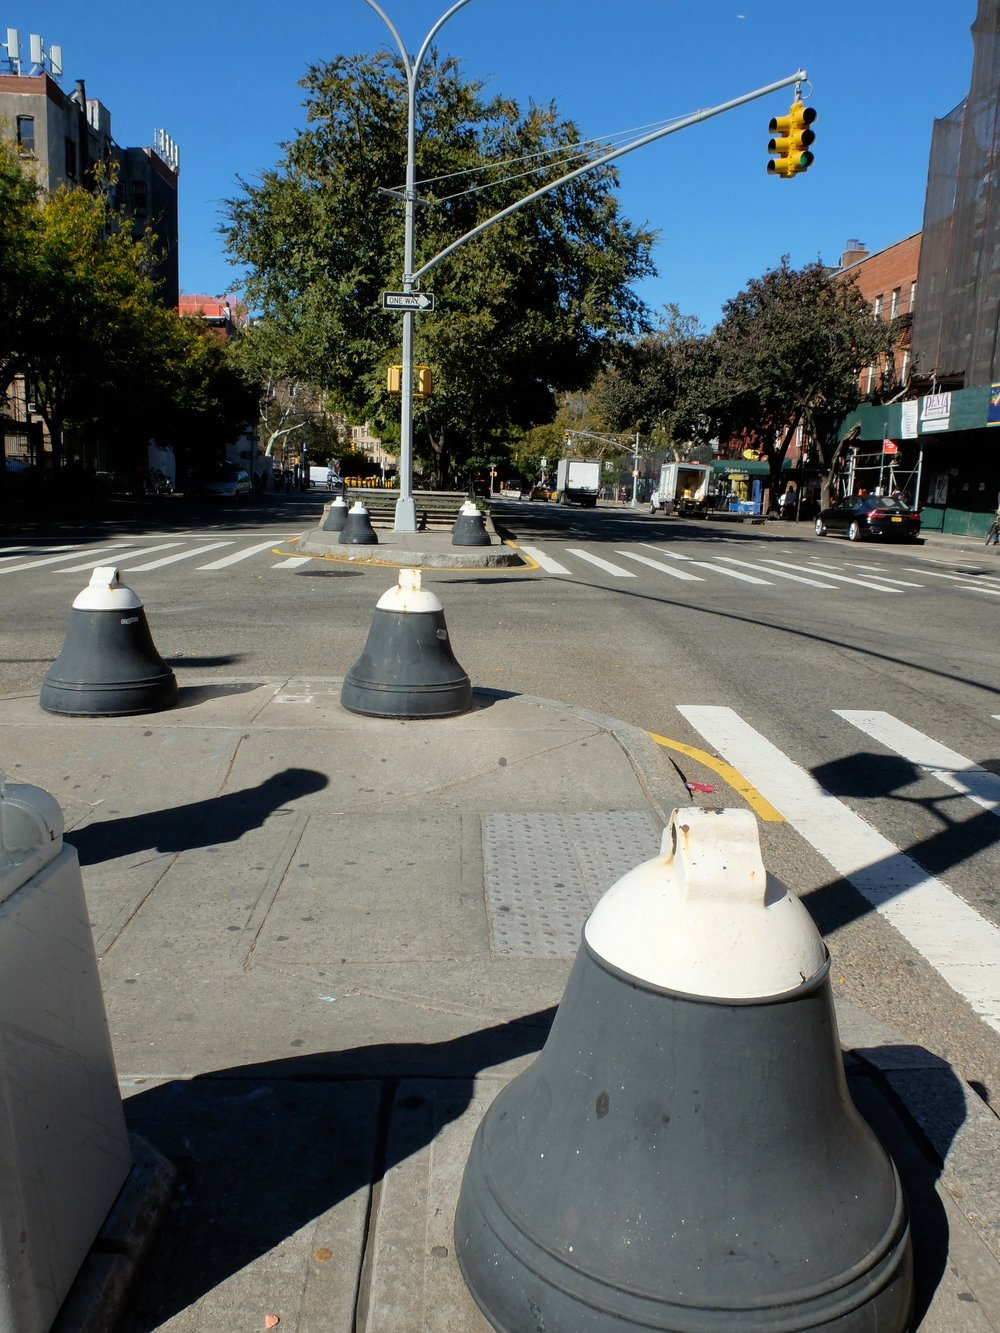 These bollards may date from the early 1900's.